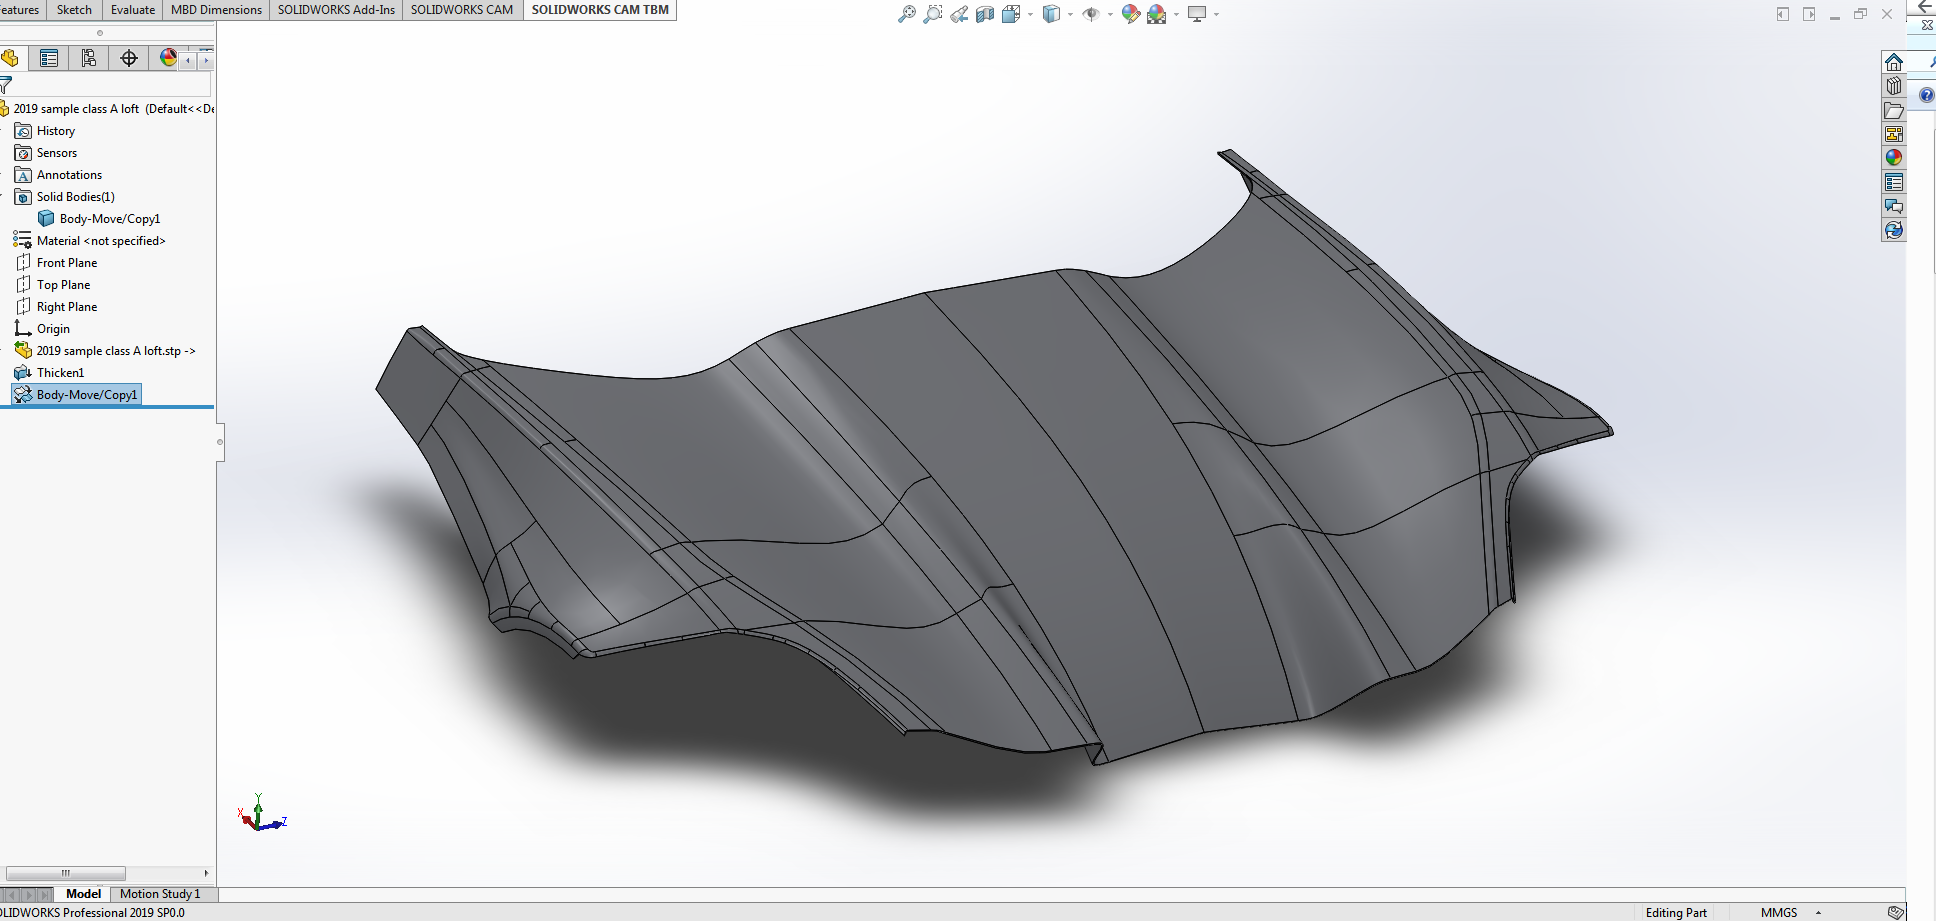 COMPATIBILITY - CAS designers are not the final technician to work on the product. Quite often your CAS surface will be thickened into a part, turned in to tooling, or 3D printed. CAS models need to be compatible with the leading CAD and CAM software suites.